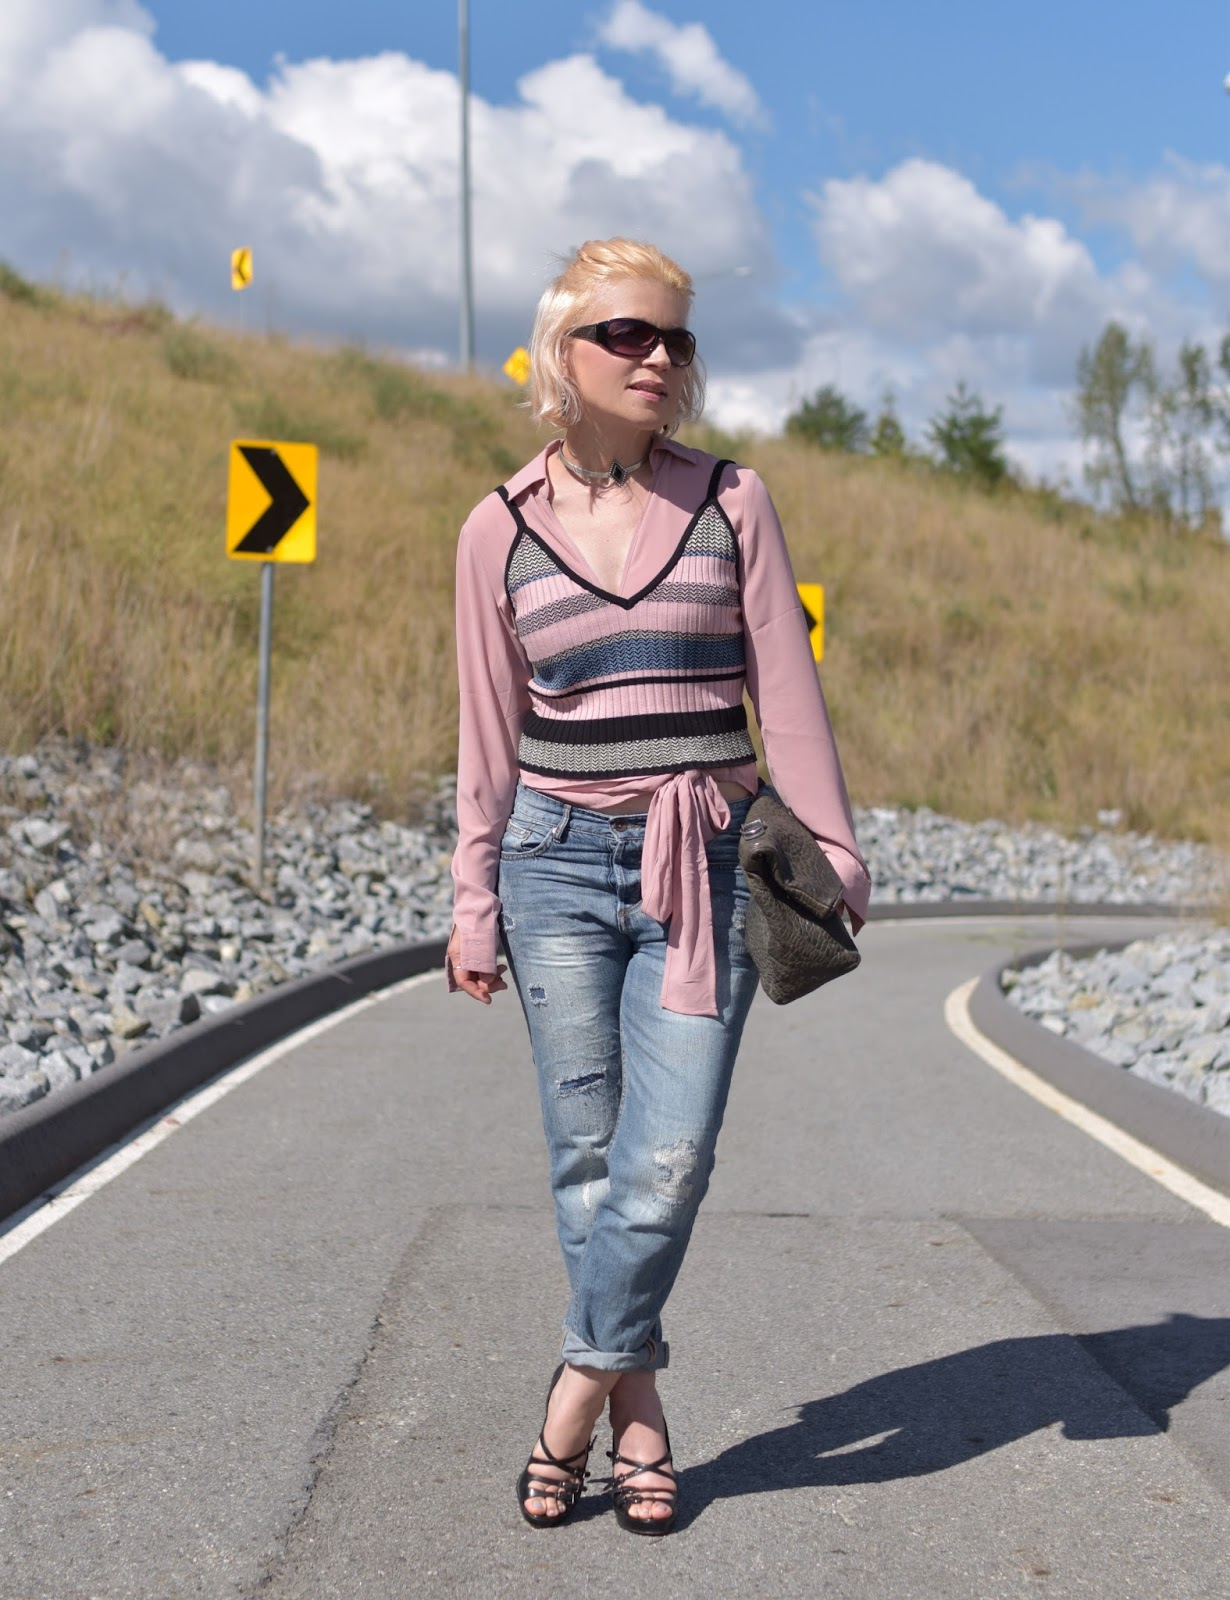 Monika Faulkner styles a striped knit tank over a front-tied blouse, with boyfriend jeans and strappy shoes